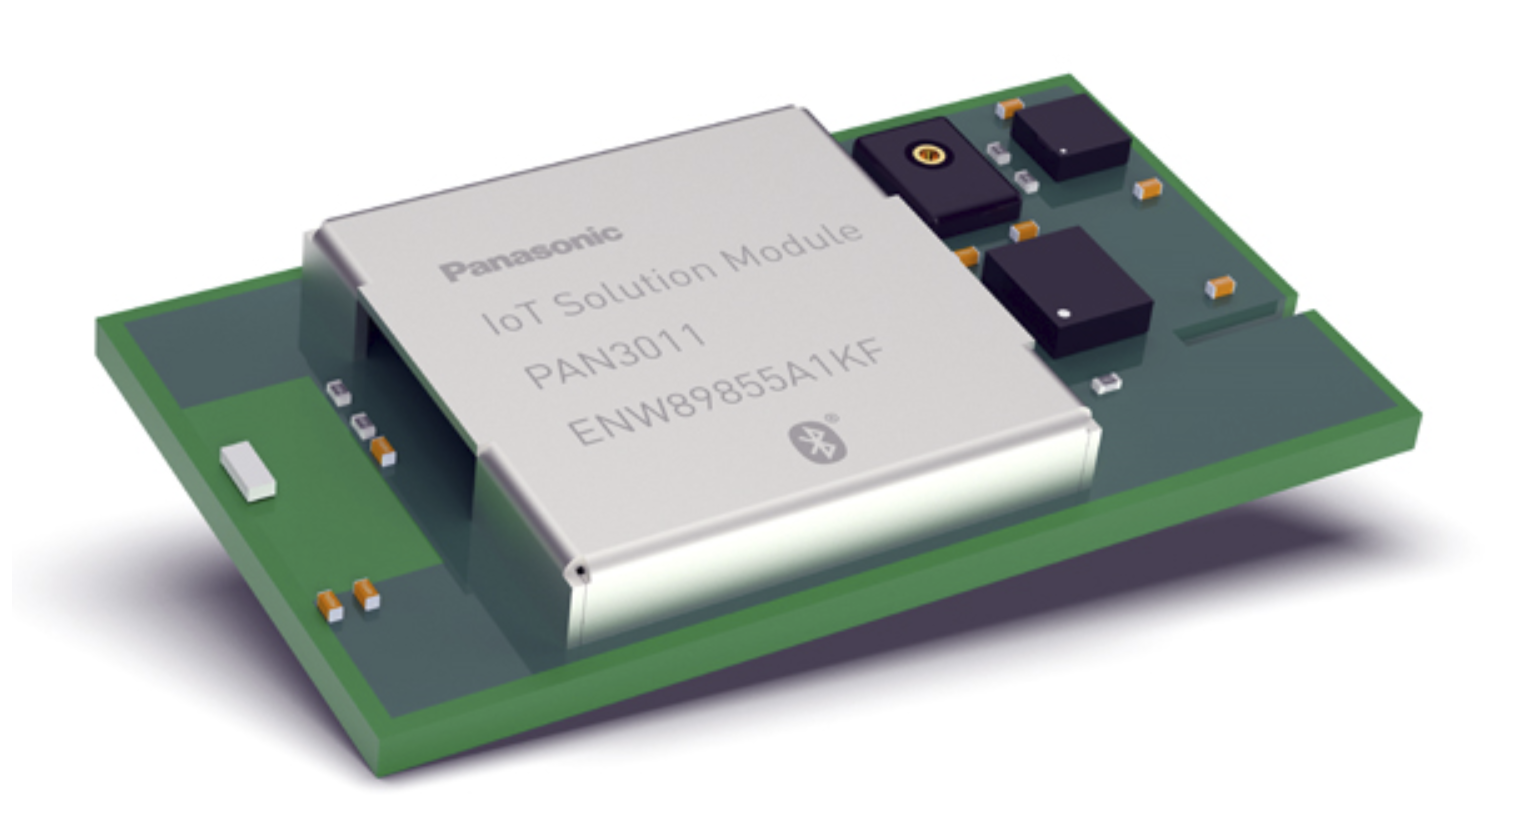 Arrow, Panasonic, and STM produce IoT module